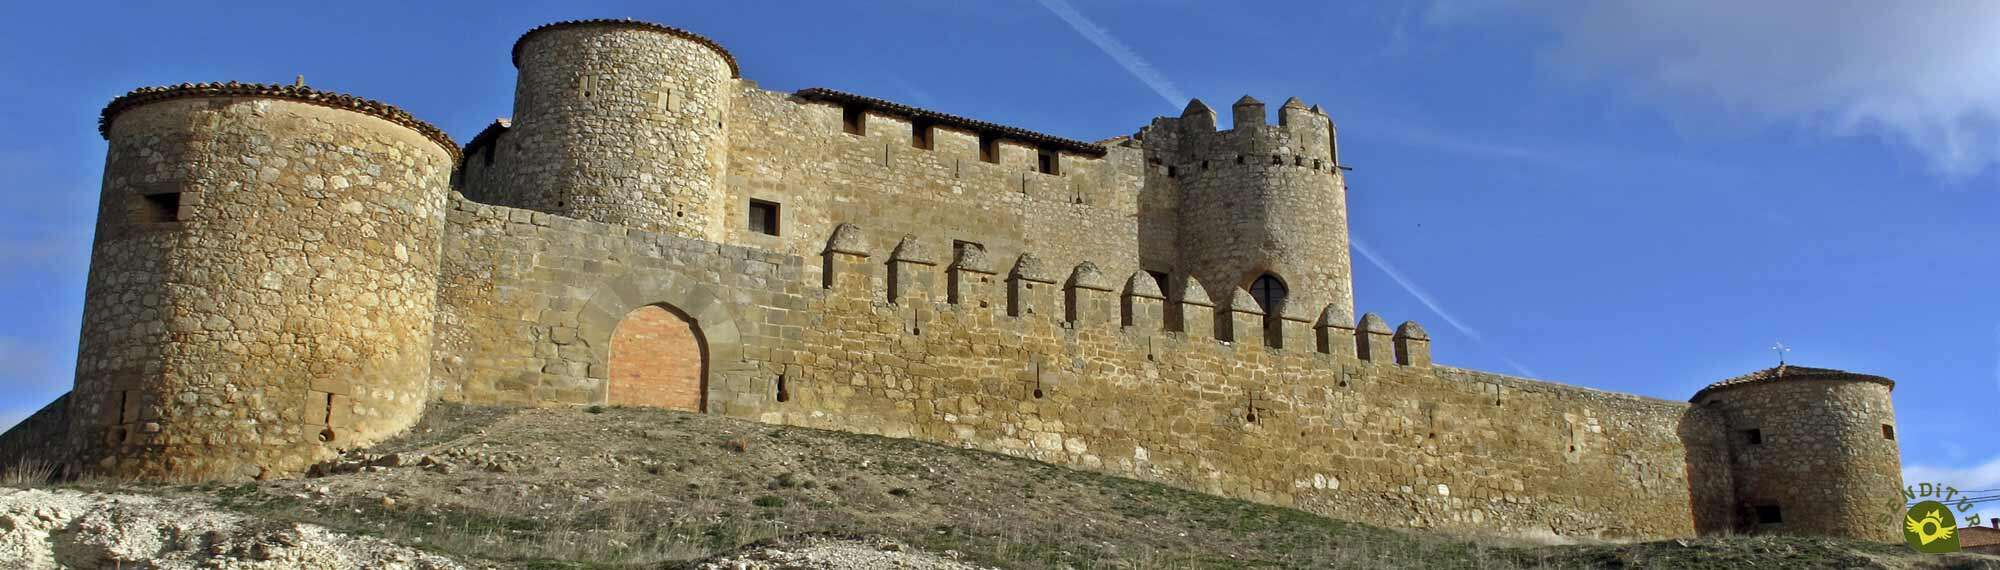 Route of the castles and fortresses of Soria